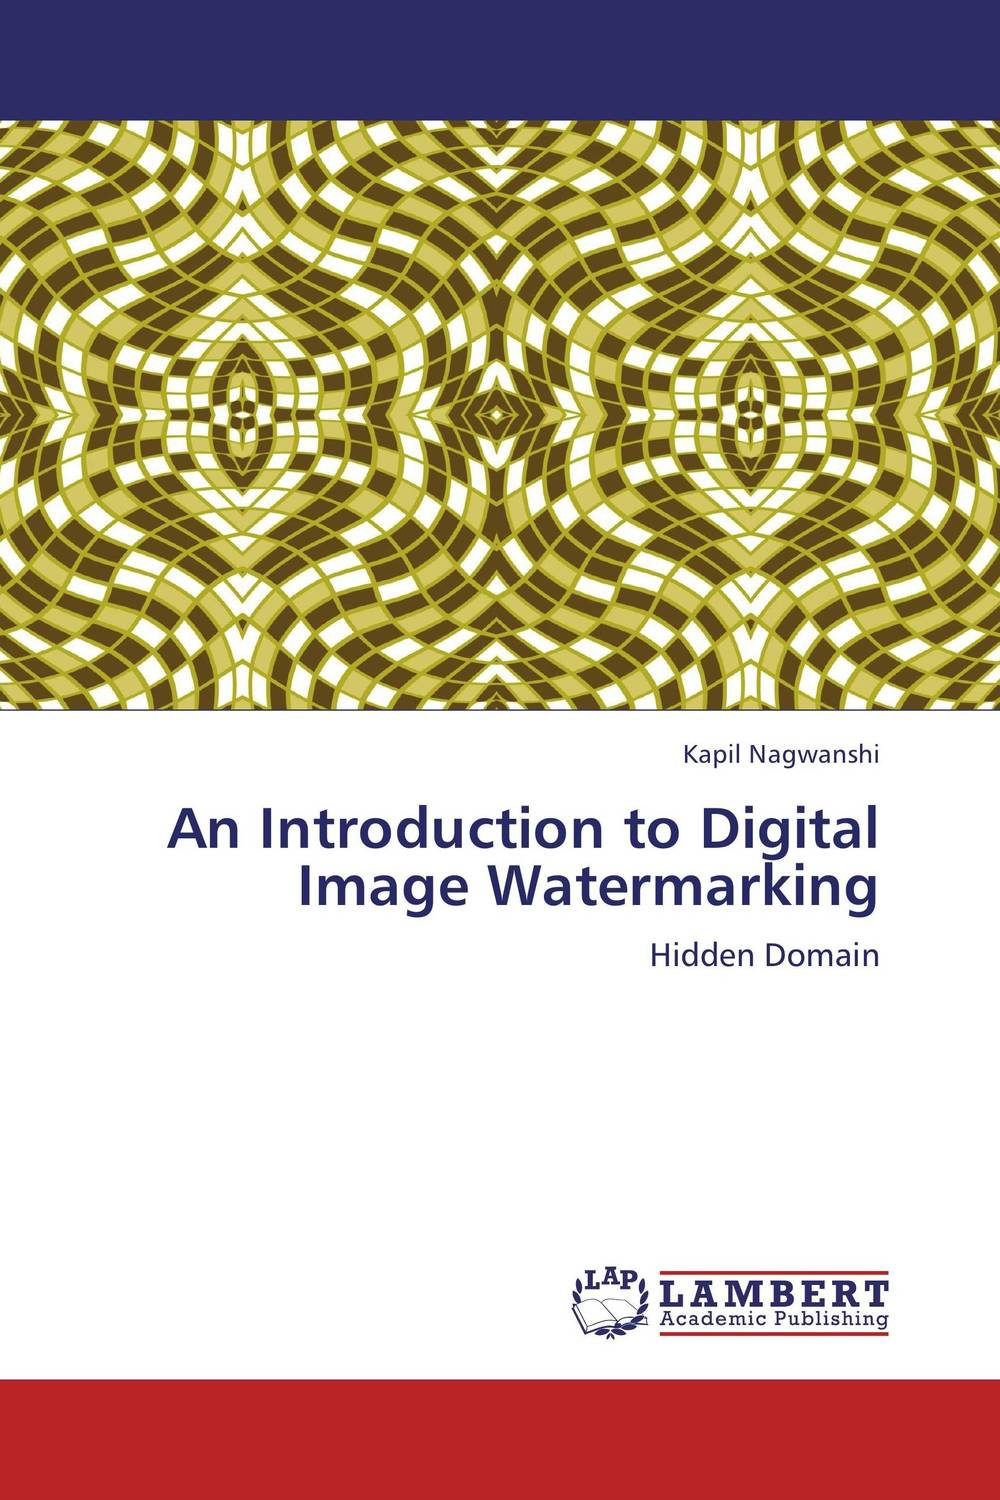 An Introduction to Digital Image Watermarking an introduction to digital image watermarking